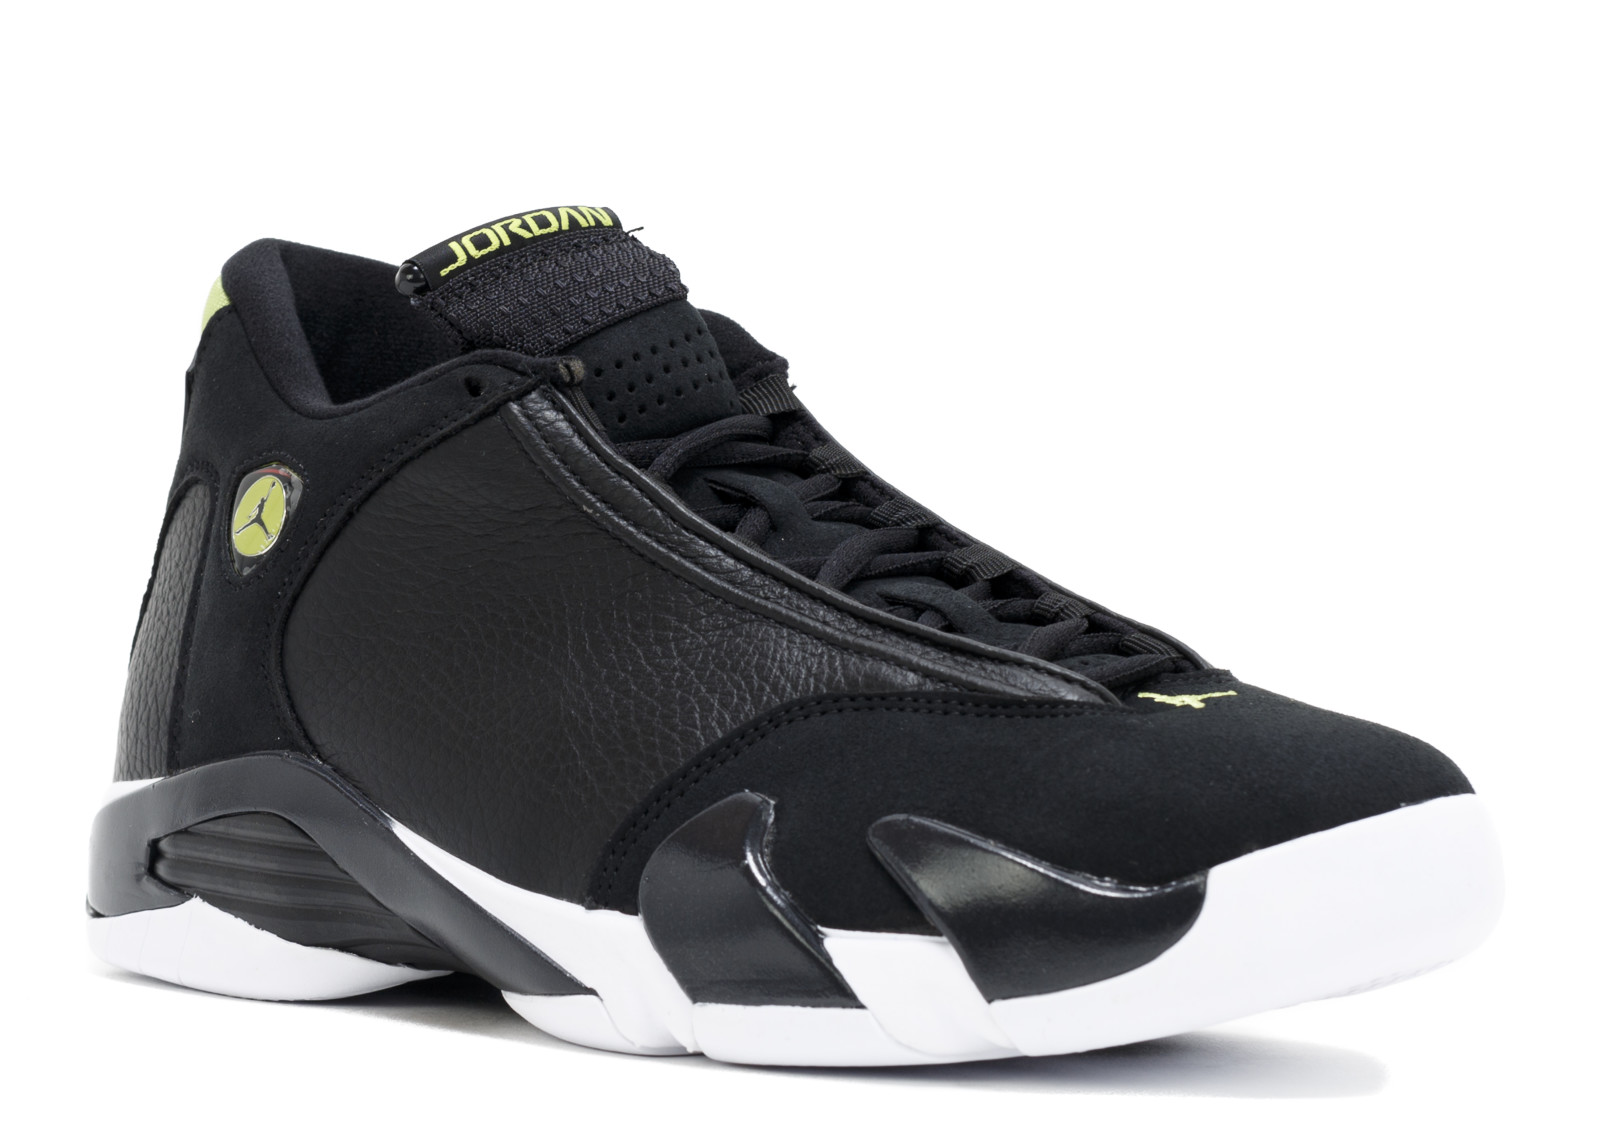 save off faef7 14aa8 Details about Air Jordan 14 Retro '2016 Release' - 487471-005 - Size 10.5